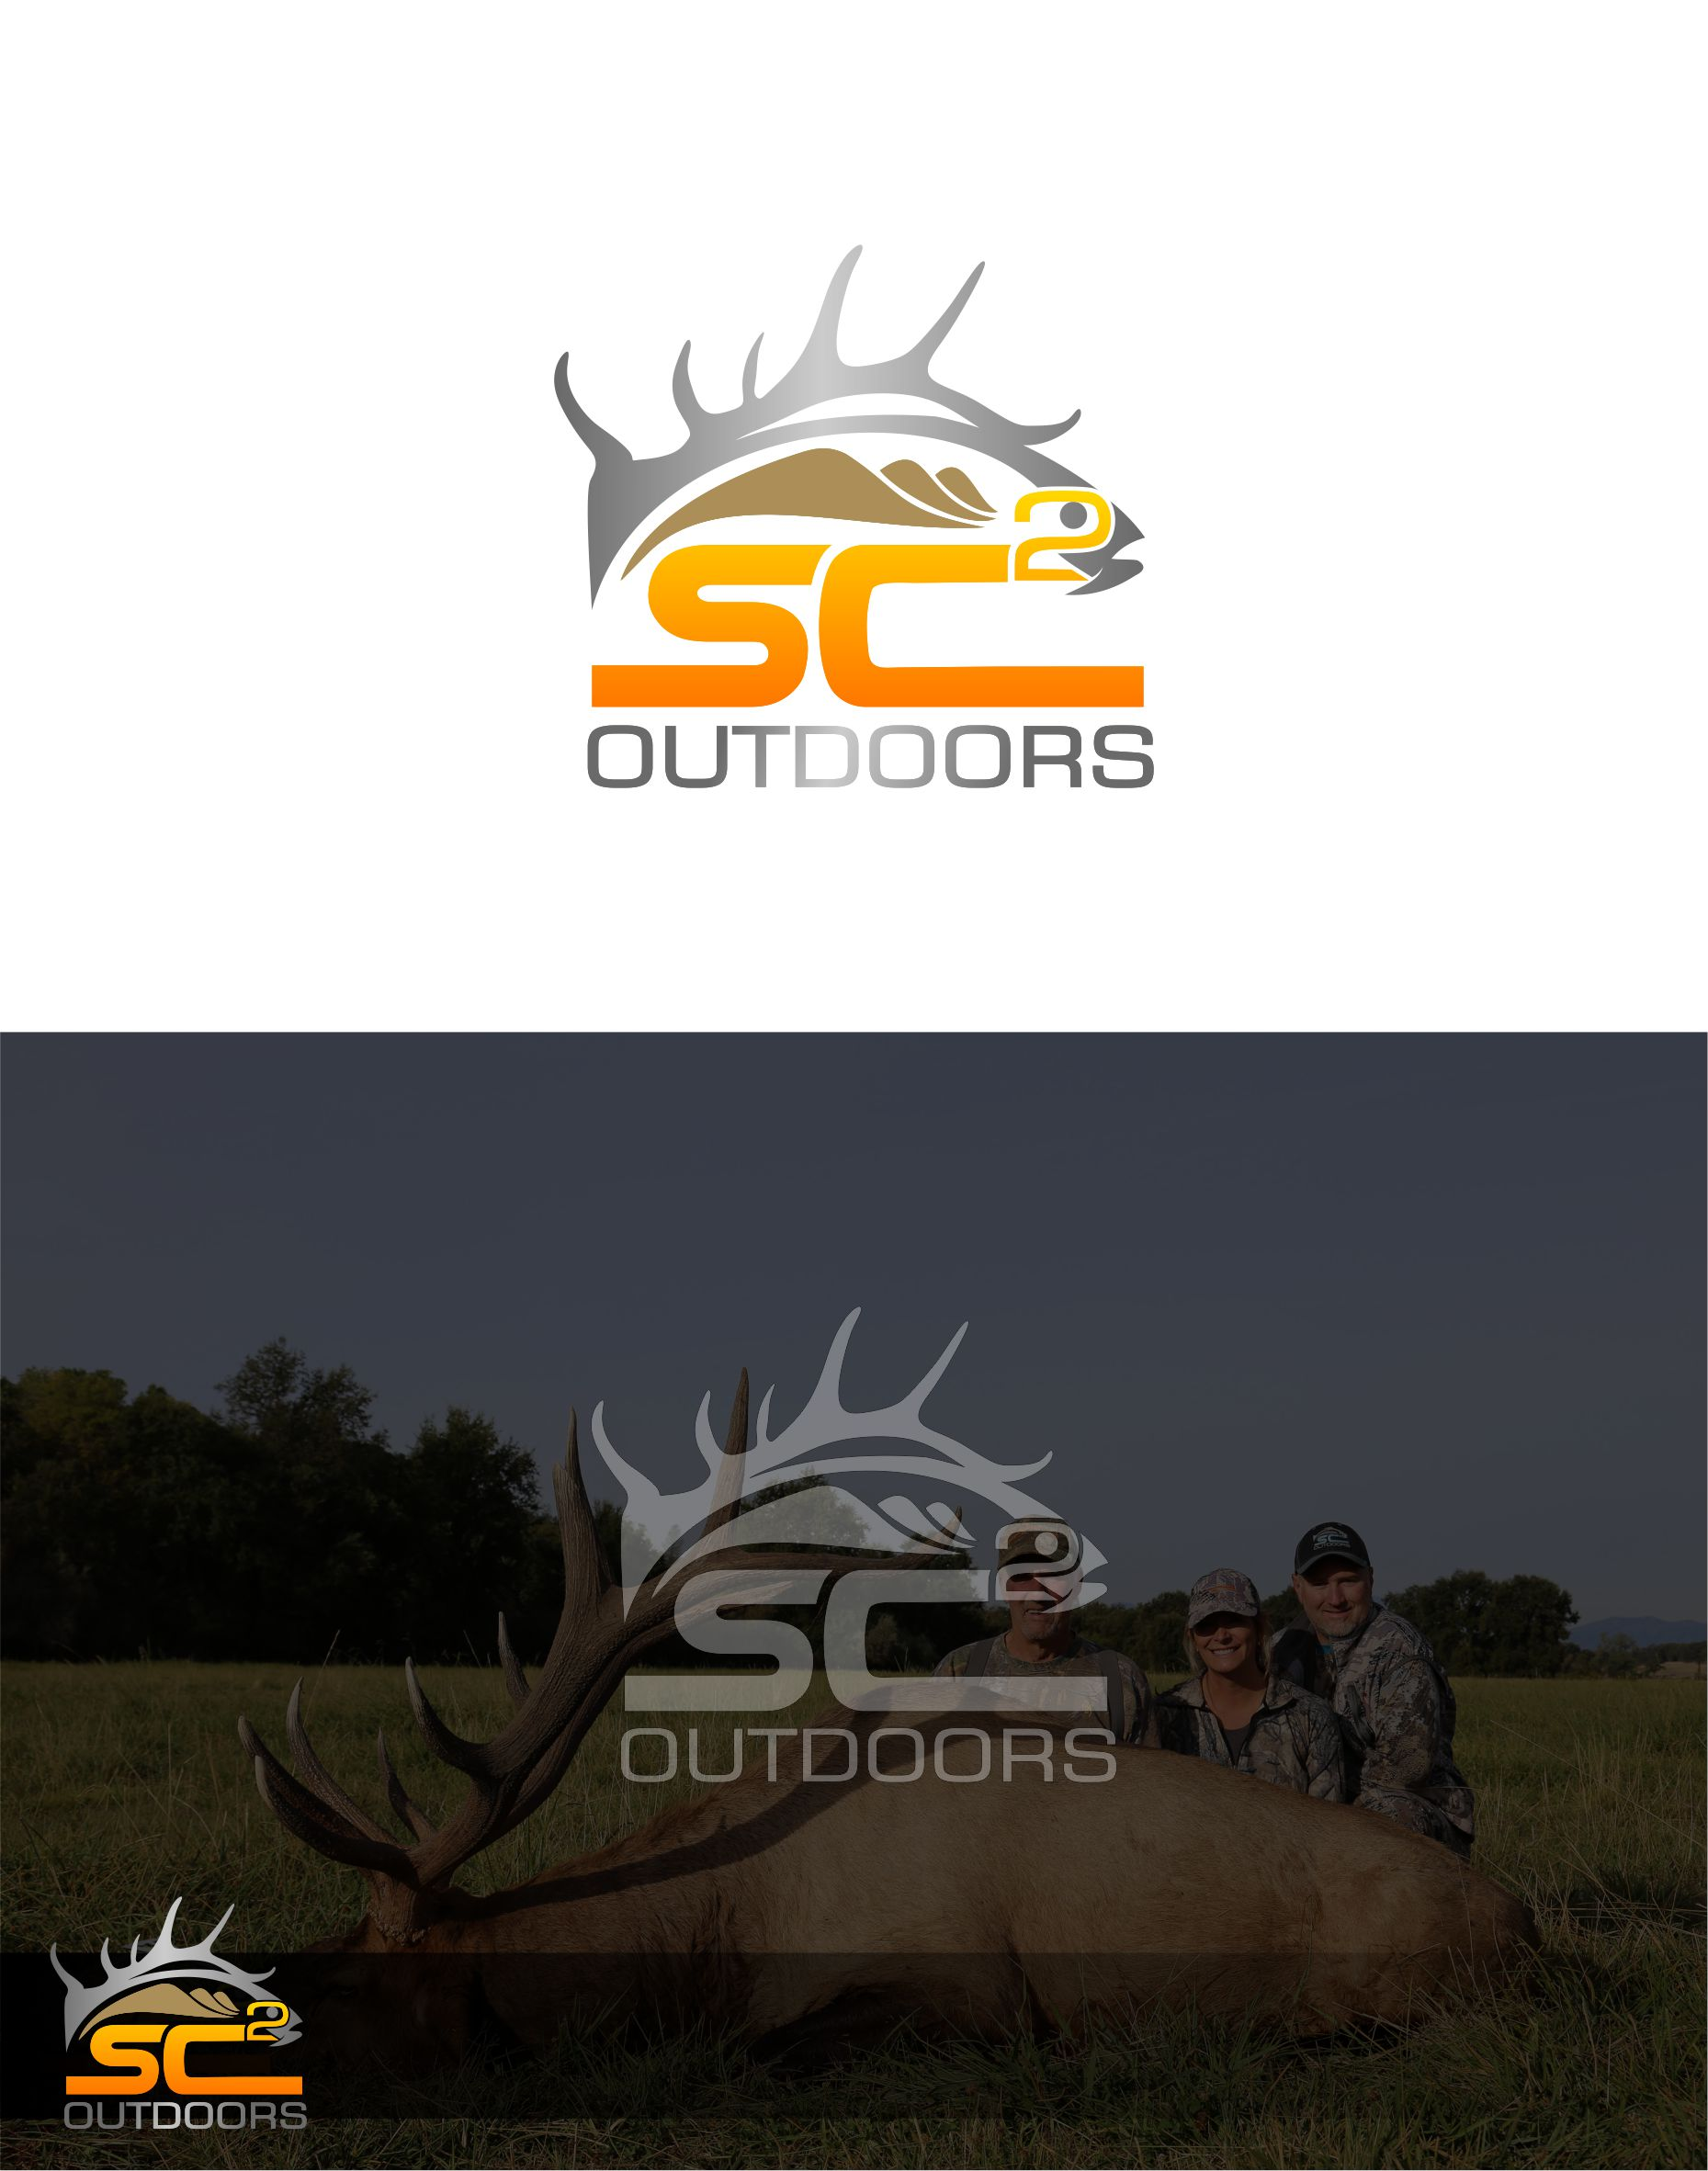 Logo Design by Raymond Garcia - Entry No. 192 in the Logo Design Contest Imaginative Logo Design for SC2 Outdoors Hunting / Fishing Logo.